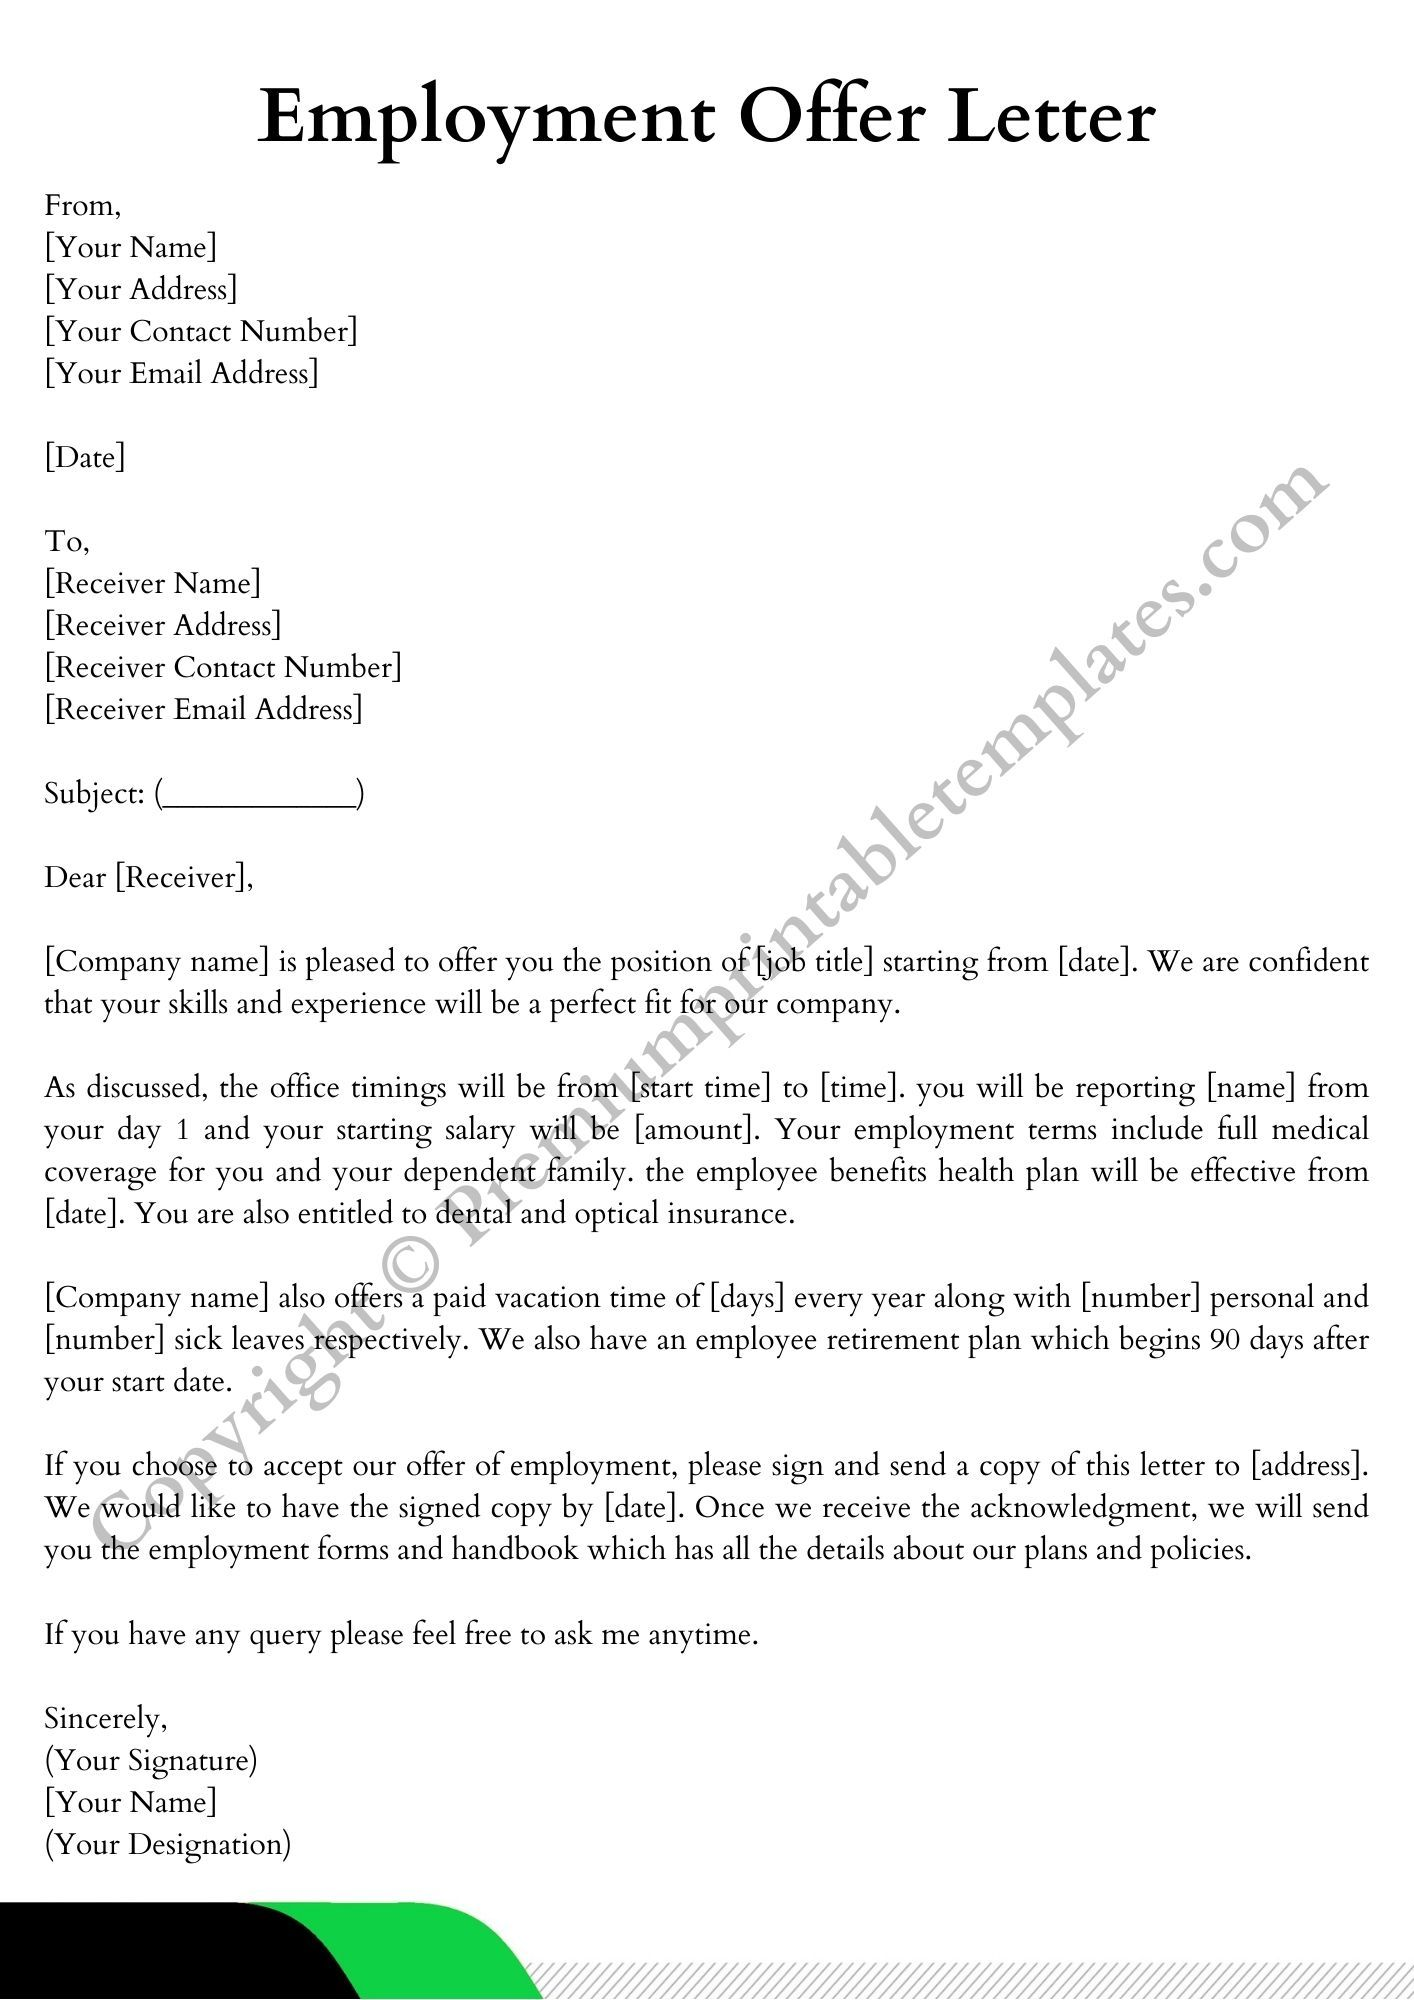 Employment Offer Letter Pack Of 3 Premium Printable Templates In 2021 Lettering Template Printable Employment